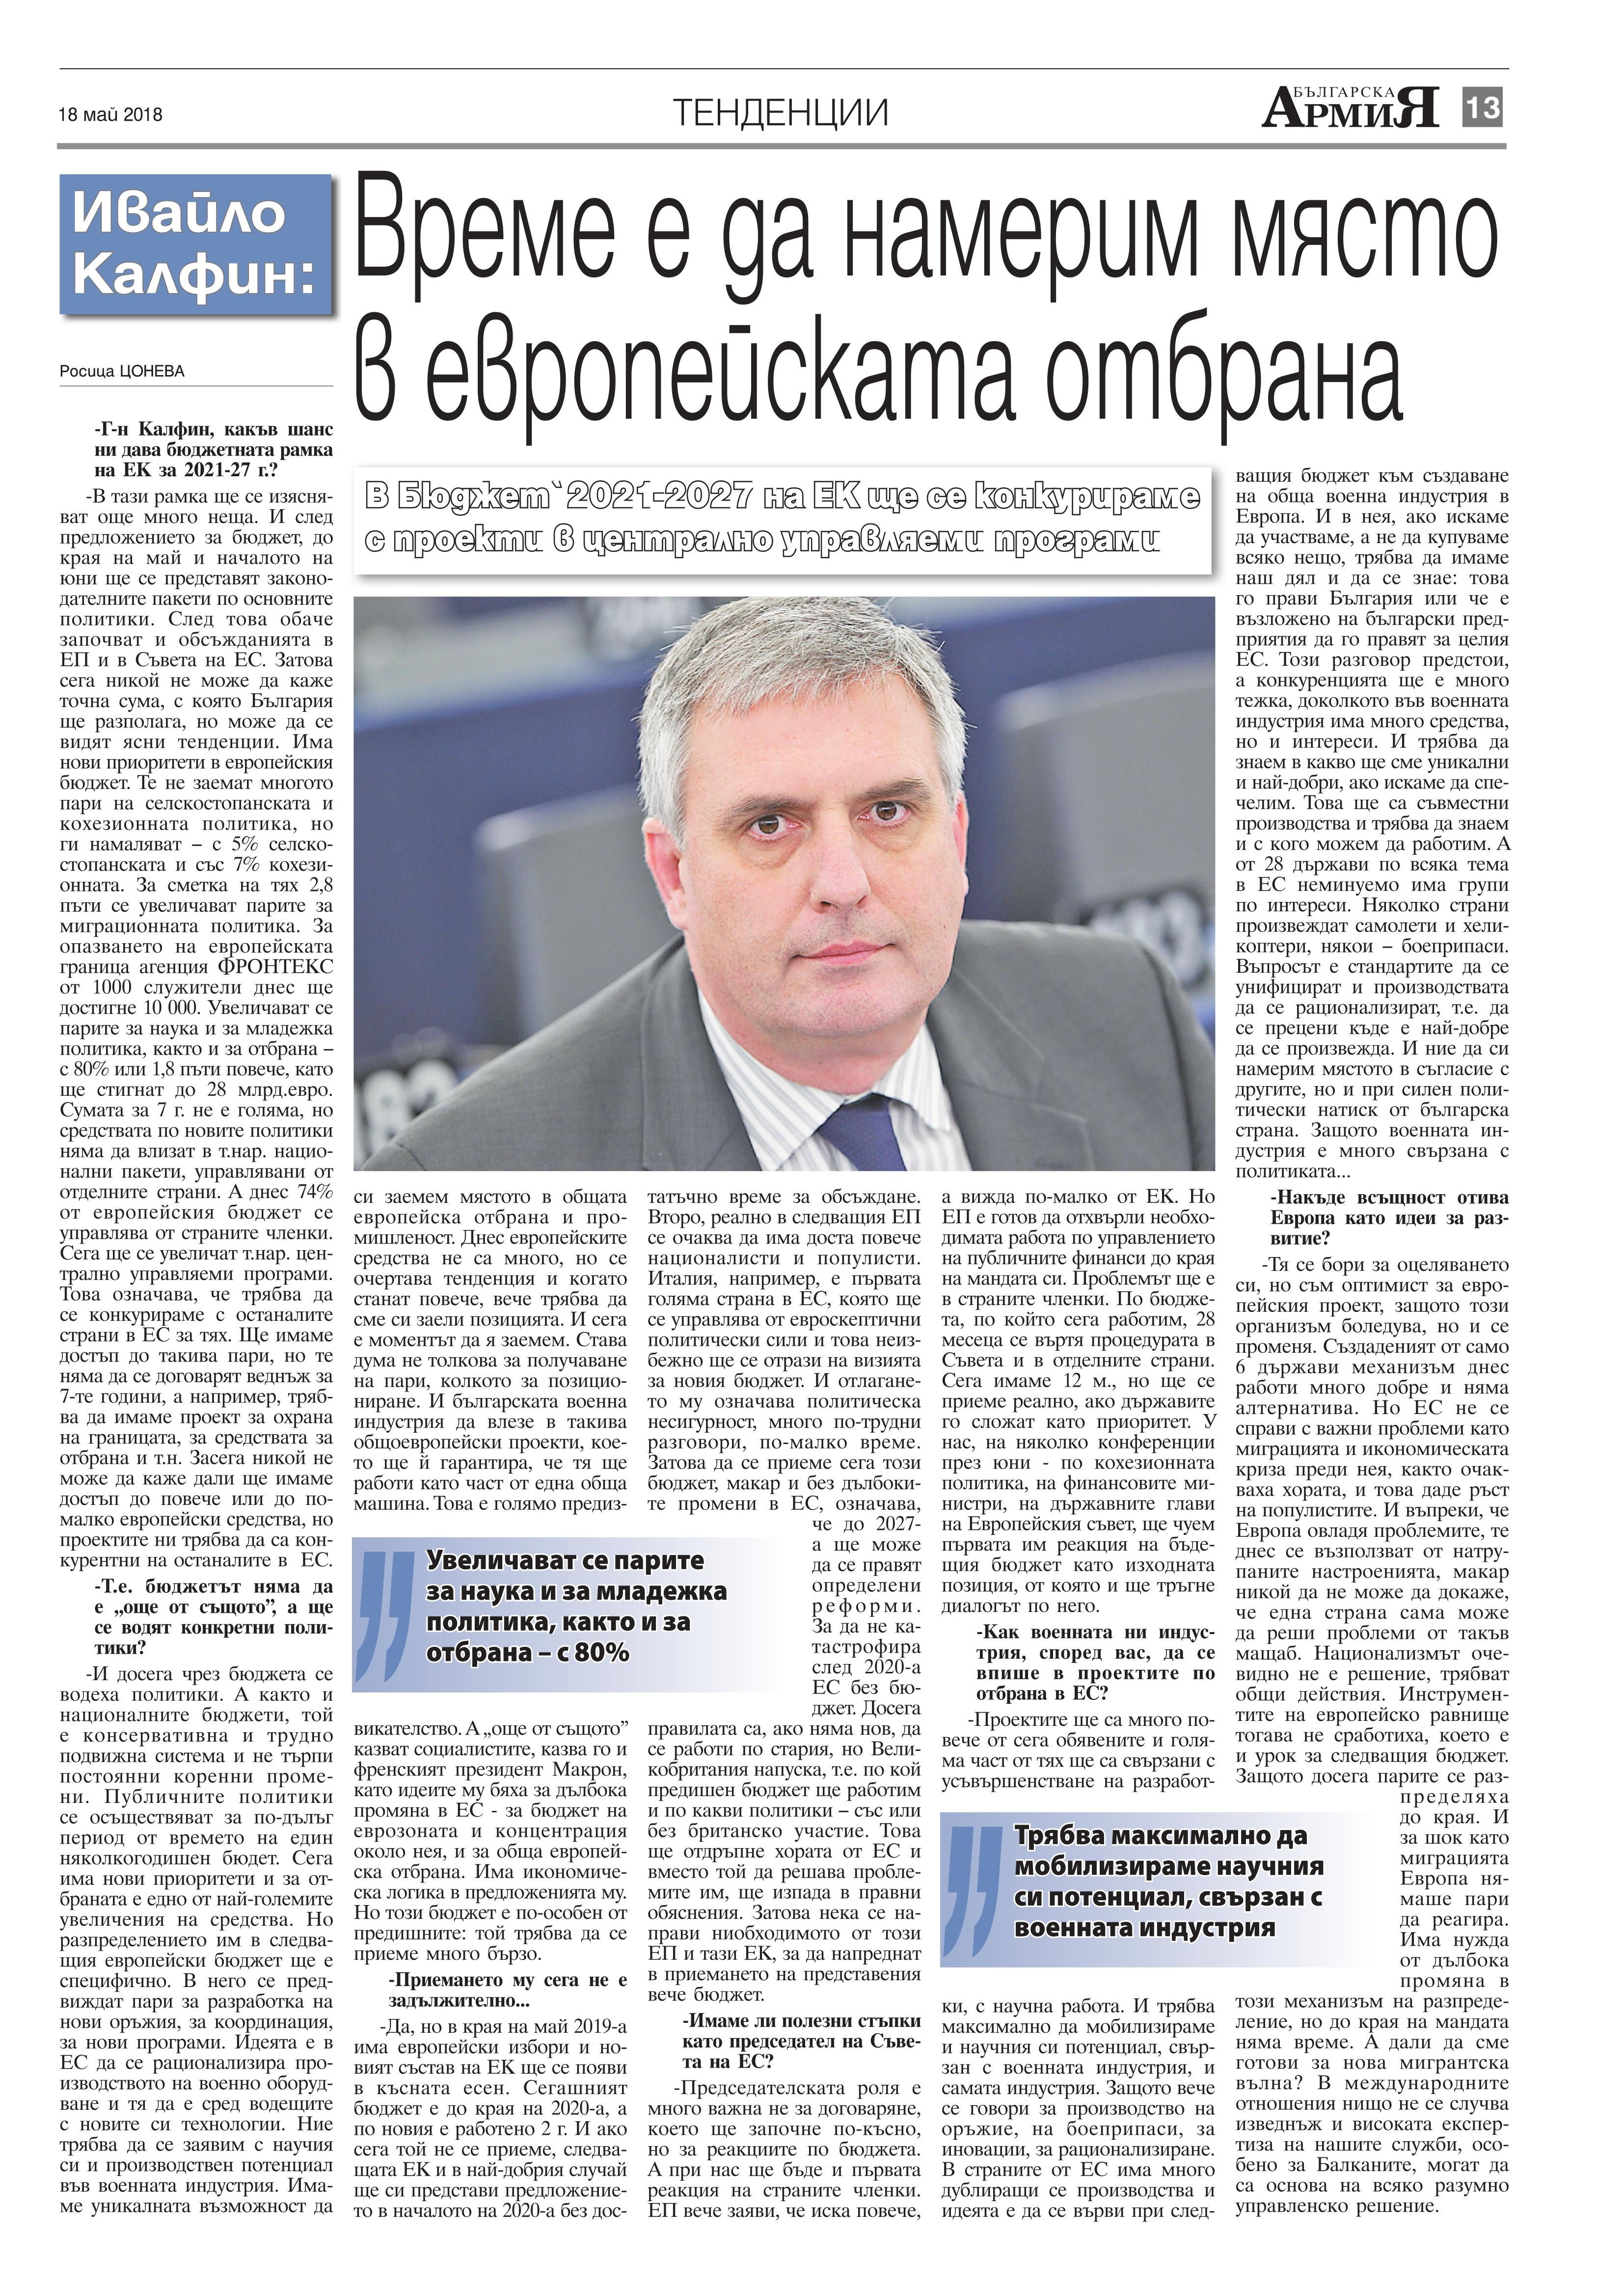 http://armymedia.bg/wp-content/uploads/2015/06/13.page1_-51.jpg